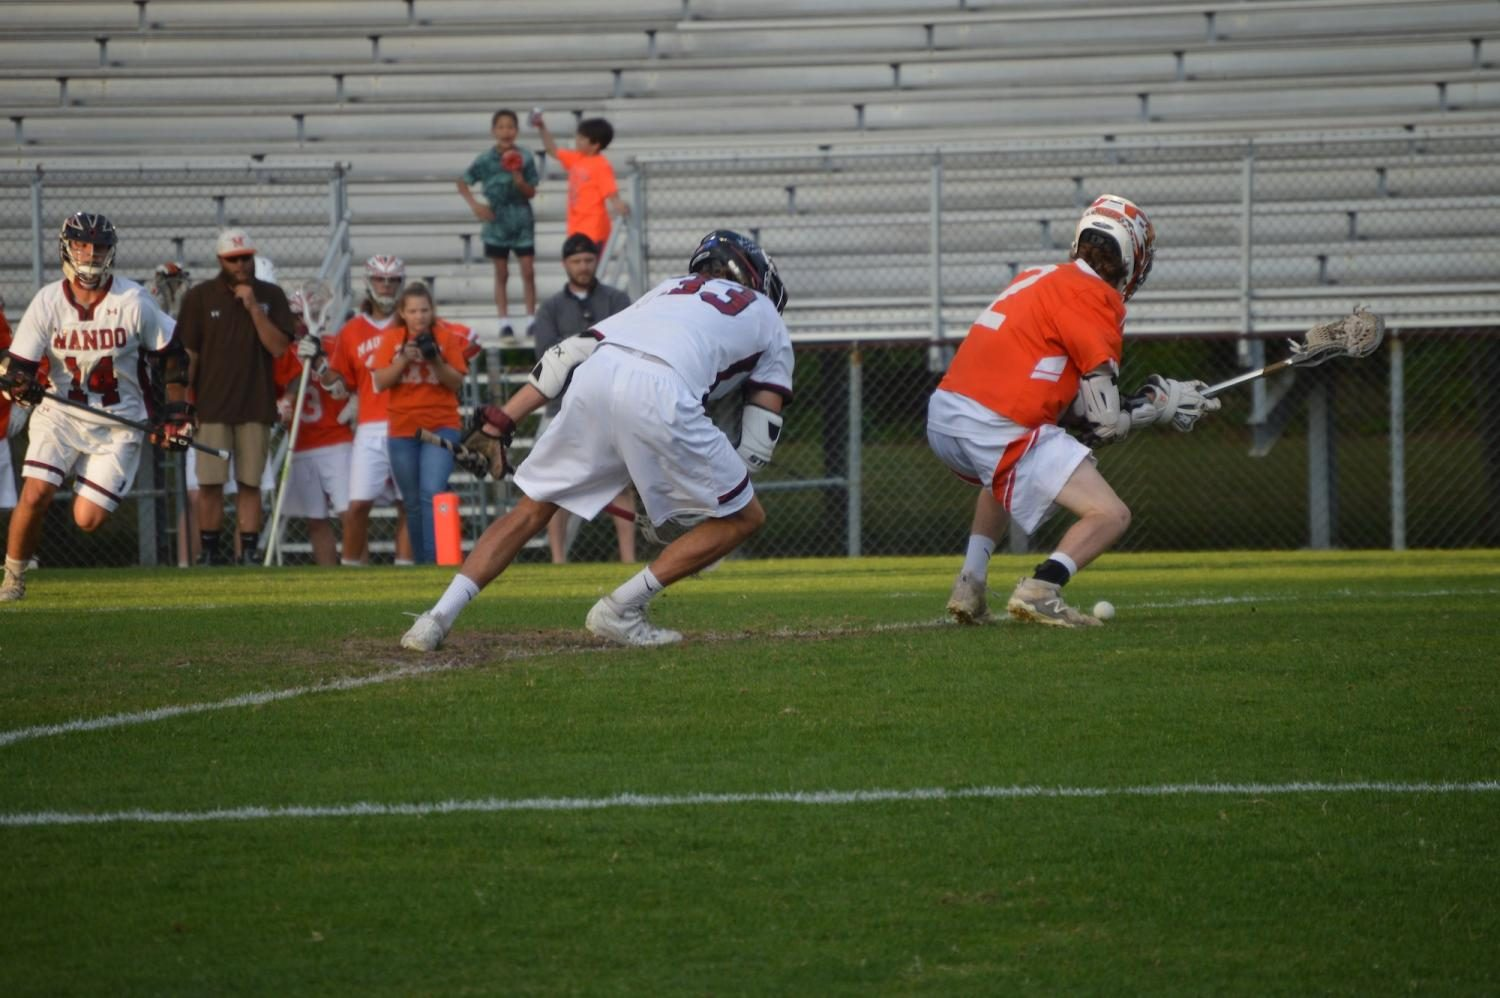 Senior Cole Hartley #33 competes for possession of the ball during their game against Mauldin on April 25